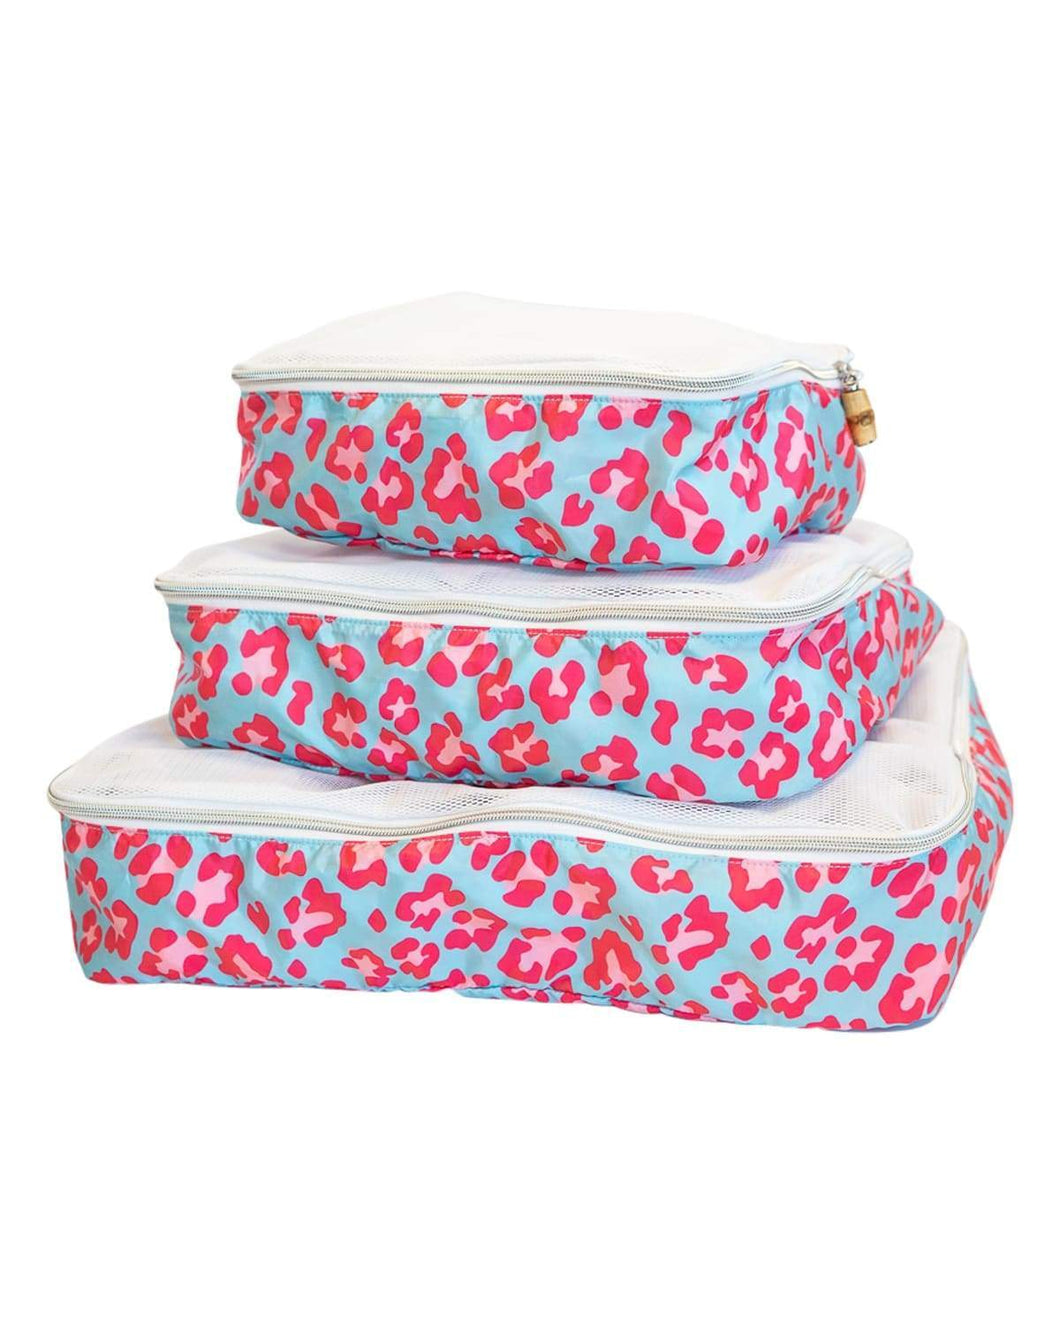 Set of 3 Packing Squad Bags